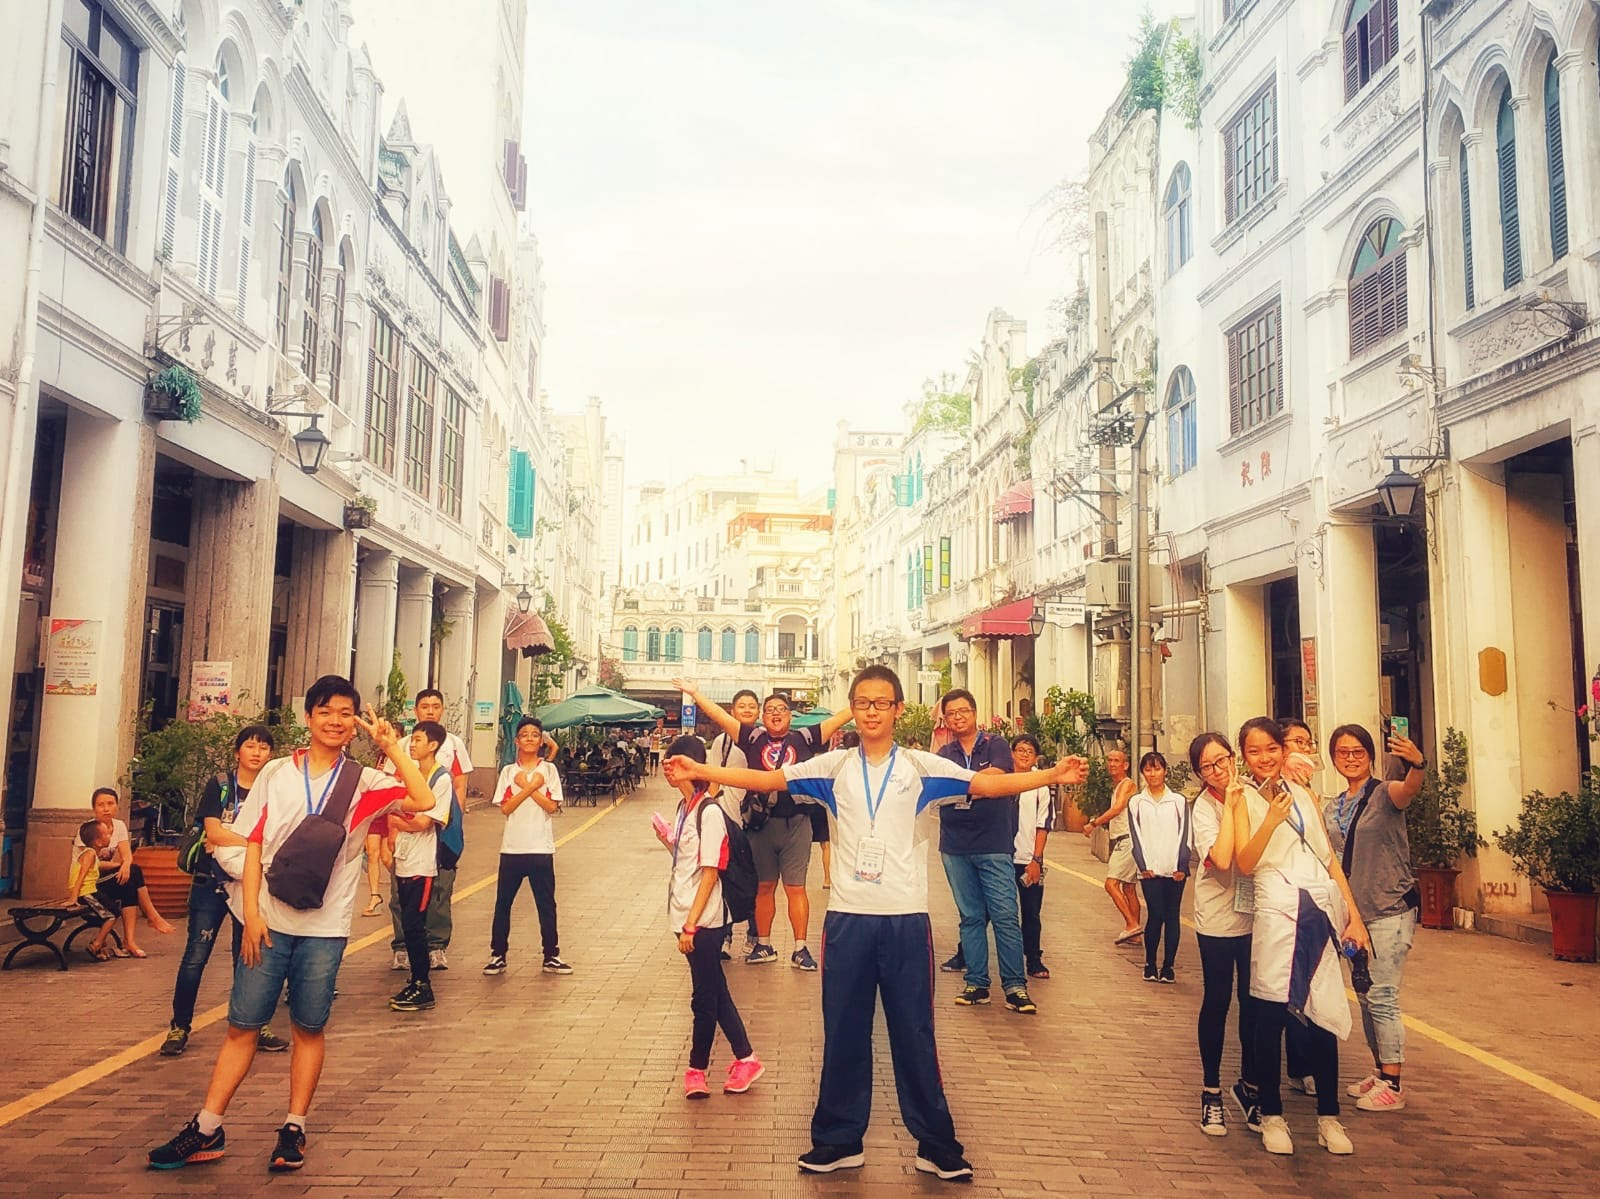 We were posing like a movie poster at Qilou Old Street, an area where tradition buildings in Hai Nan were preserved.